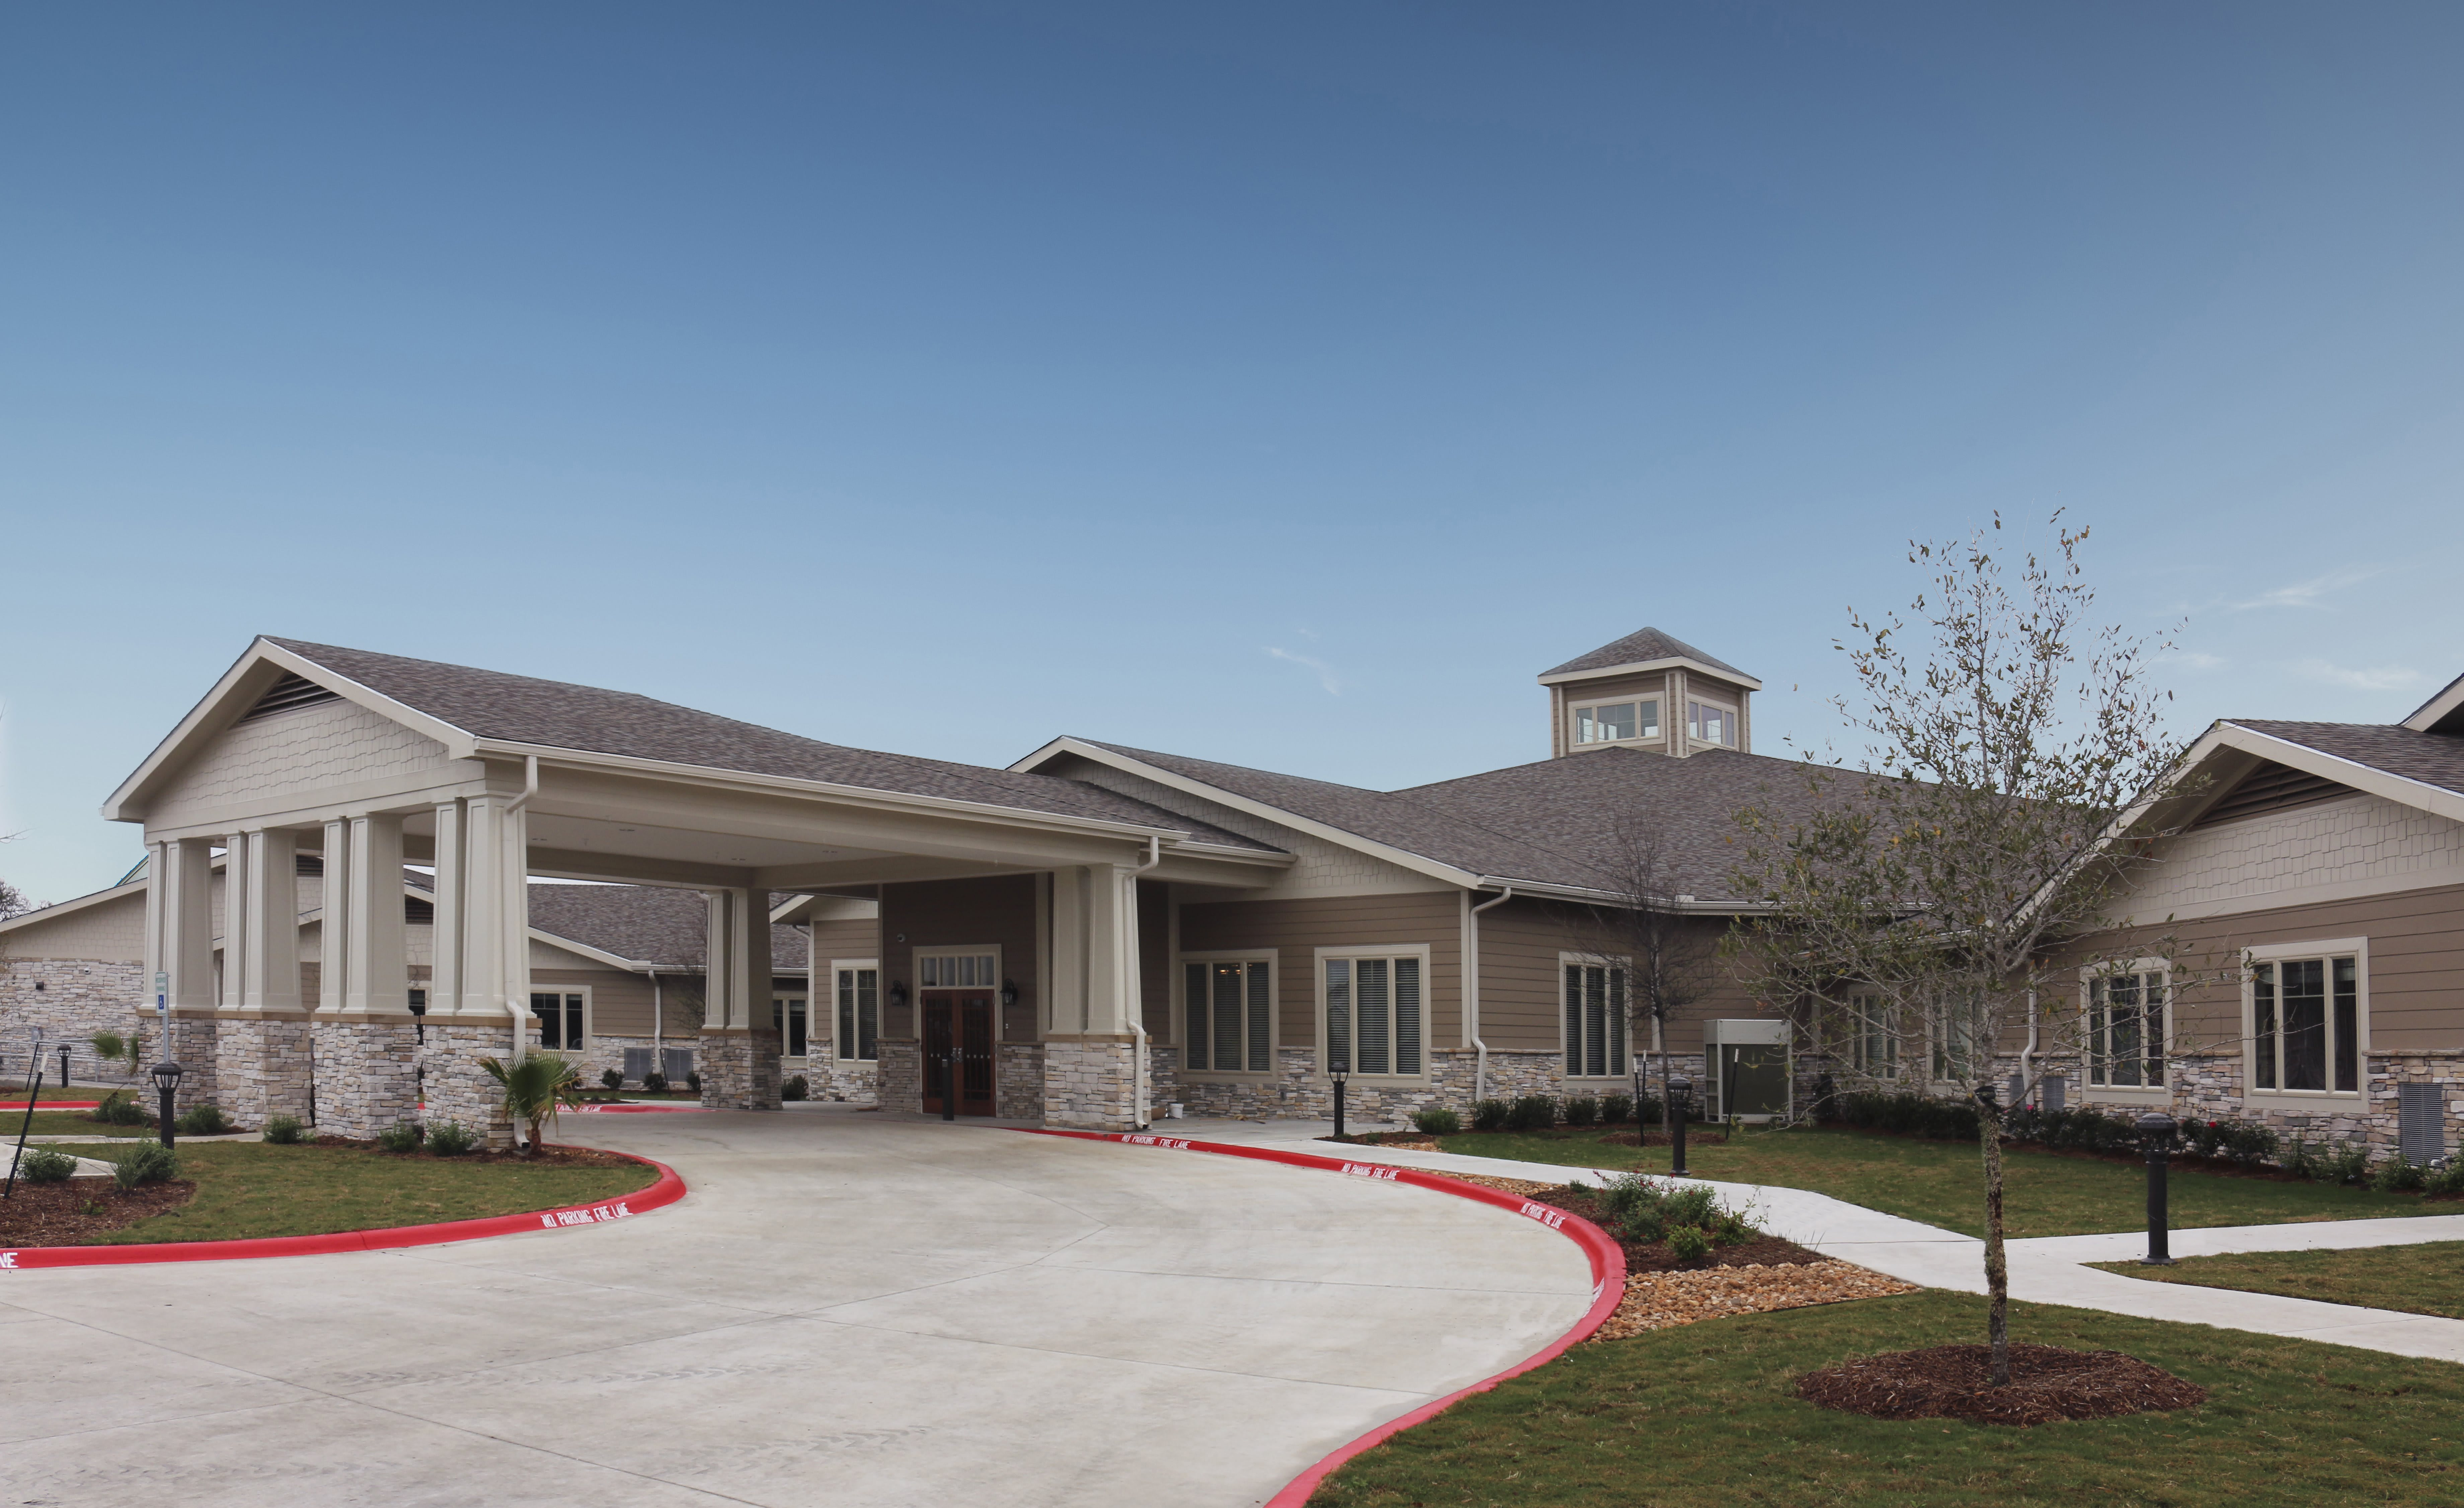 Photo 1 of Memory Care of New Braunfels